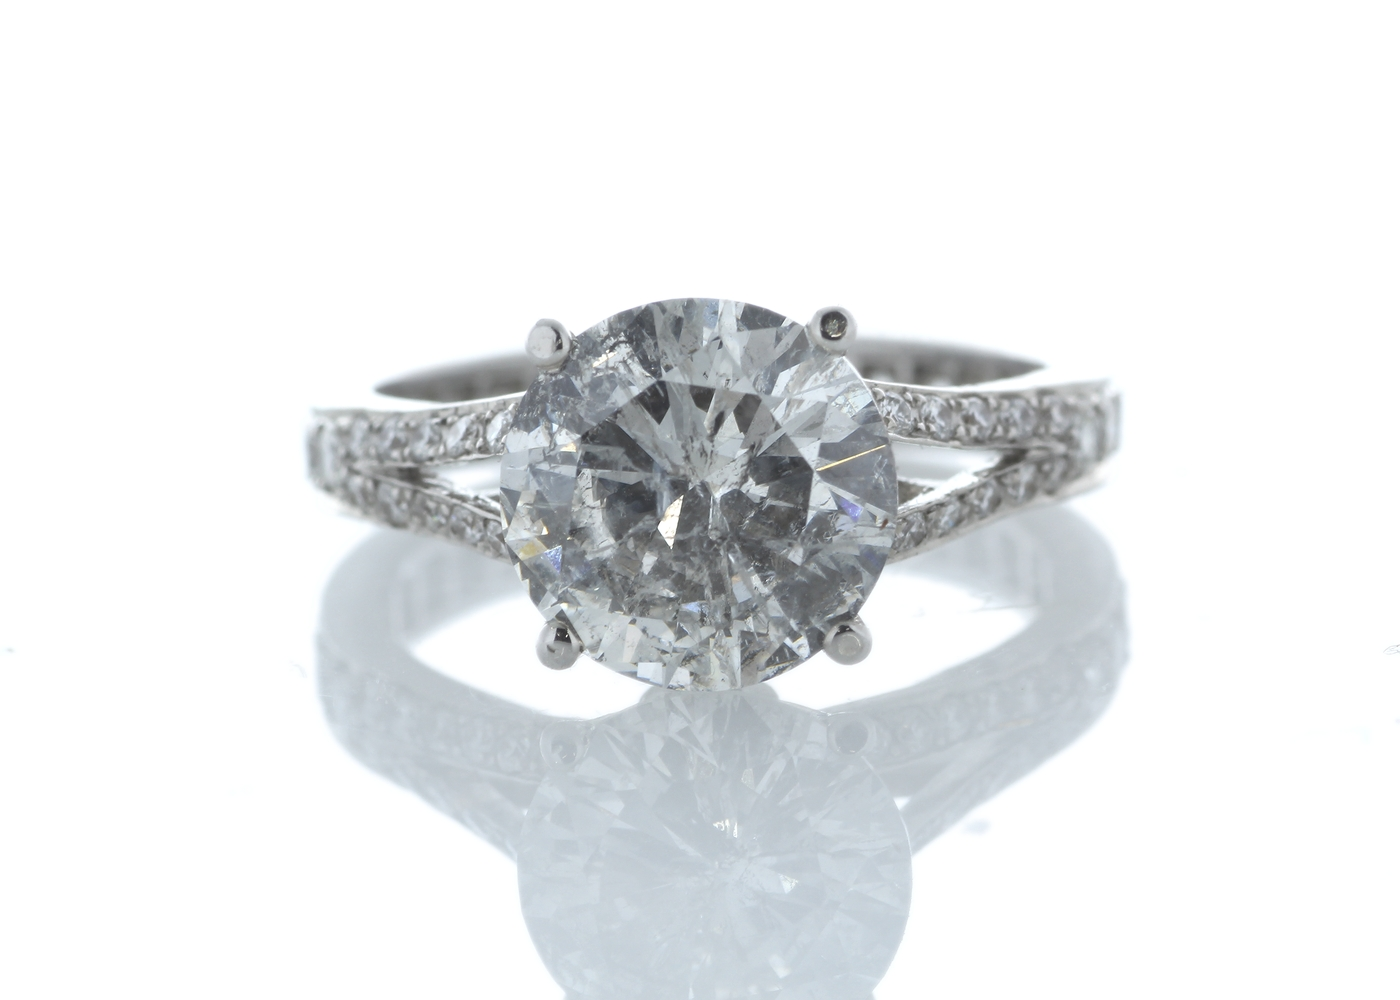 18ct White Gold Stone Set Shoulders Diamond Ring 3.67 Carats